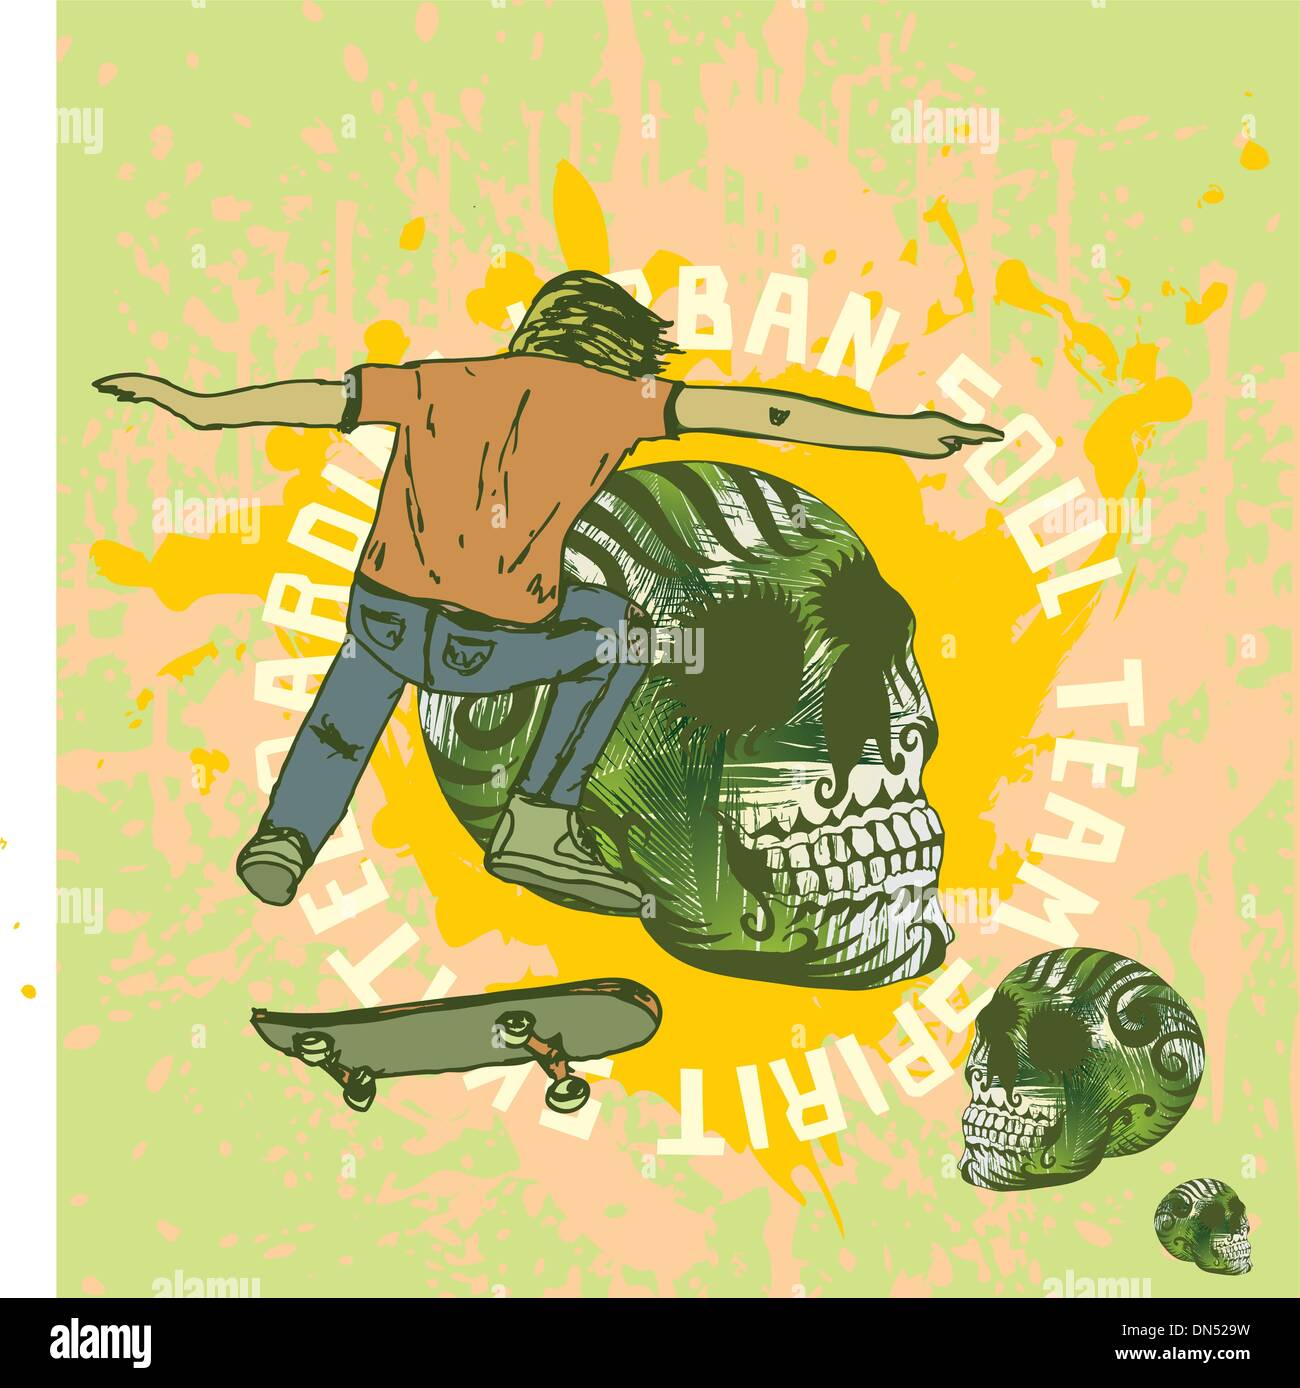 Skate Art Stock Photos & Skate Art Stock Images - Alamy